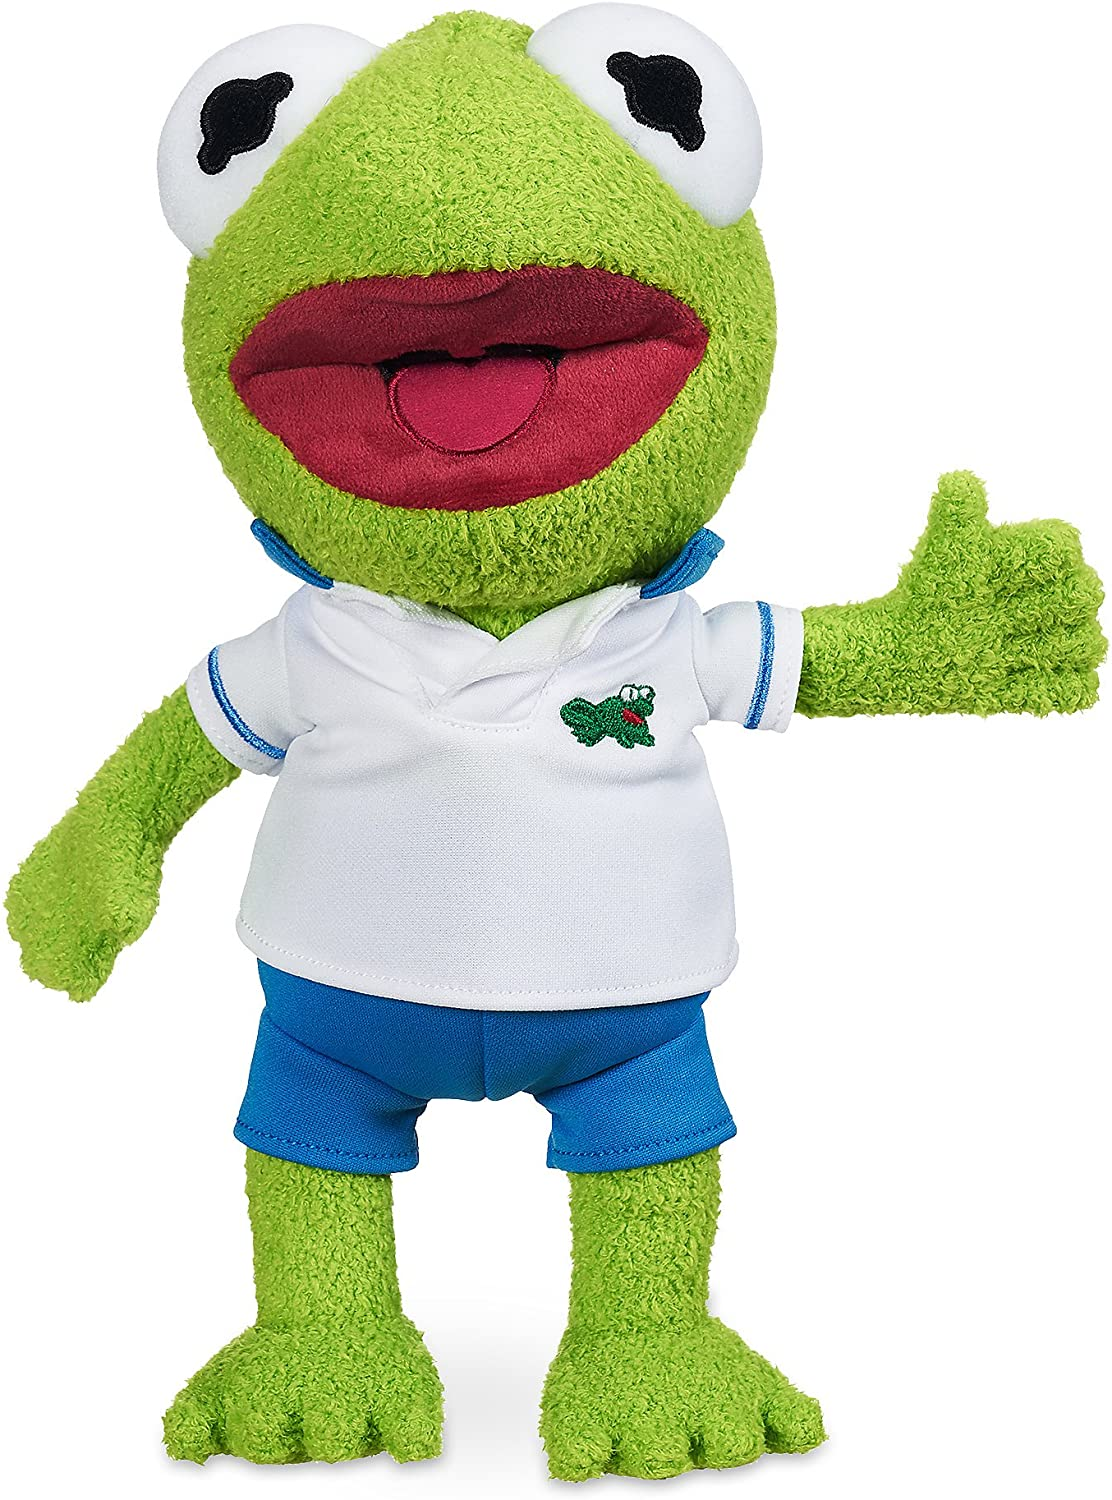 """Disney Muppet Babies Gonzo 13/"""" Plush Doll Toy brand new with tag"""